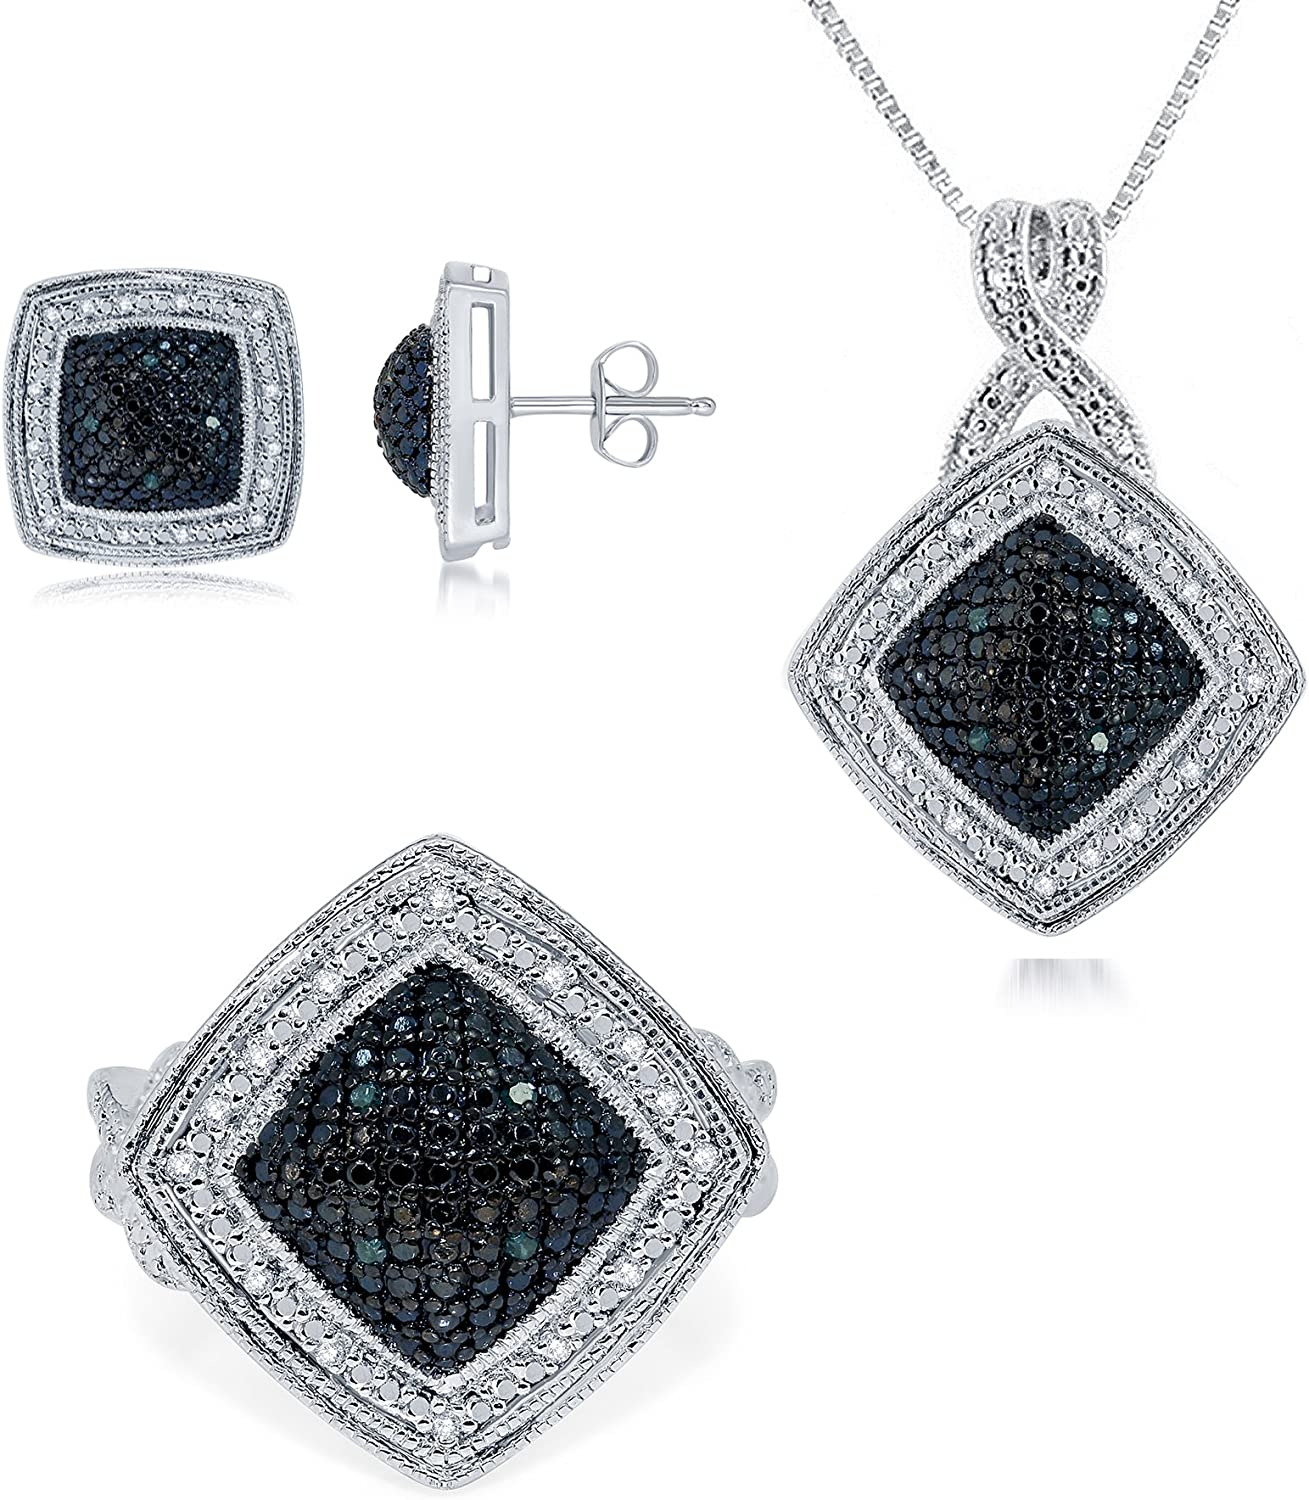 Classic Prong-Set Gold Rhodium Over Brass Blue and Diamond Accent 3 Piece Set Consists of Pendant Earring and Ring for Women Teen Girls Daily Wear Jewelry   by La4ve Diamonds  Gift Box Included